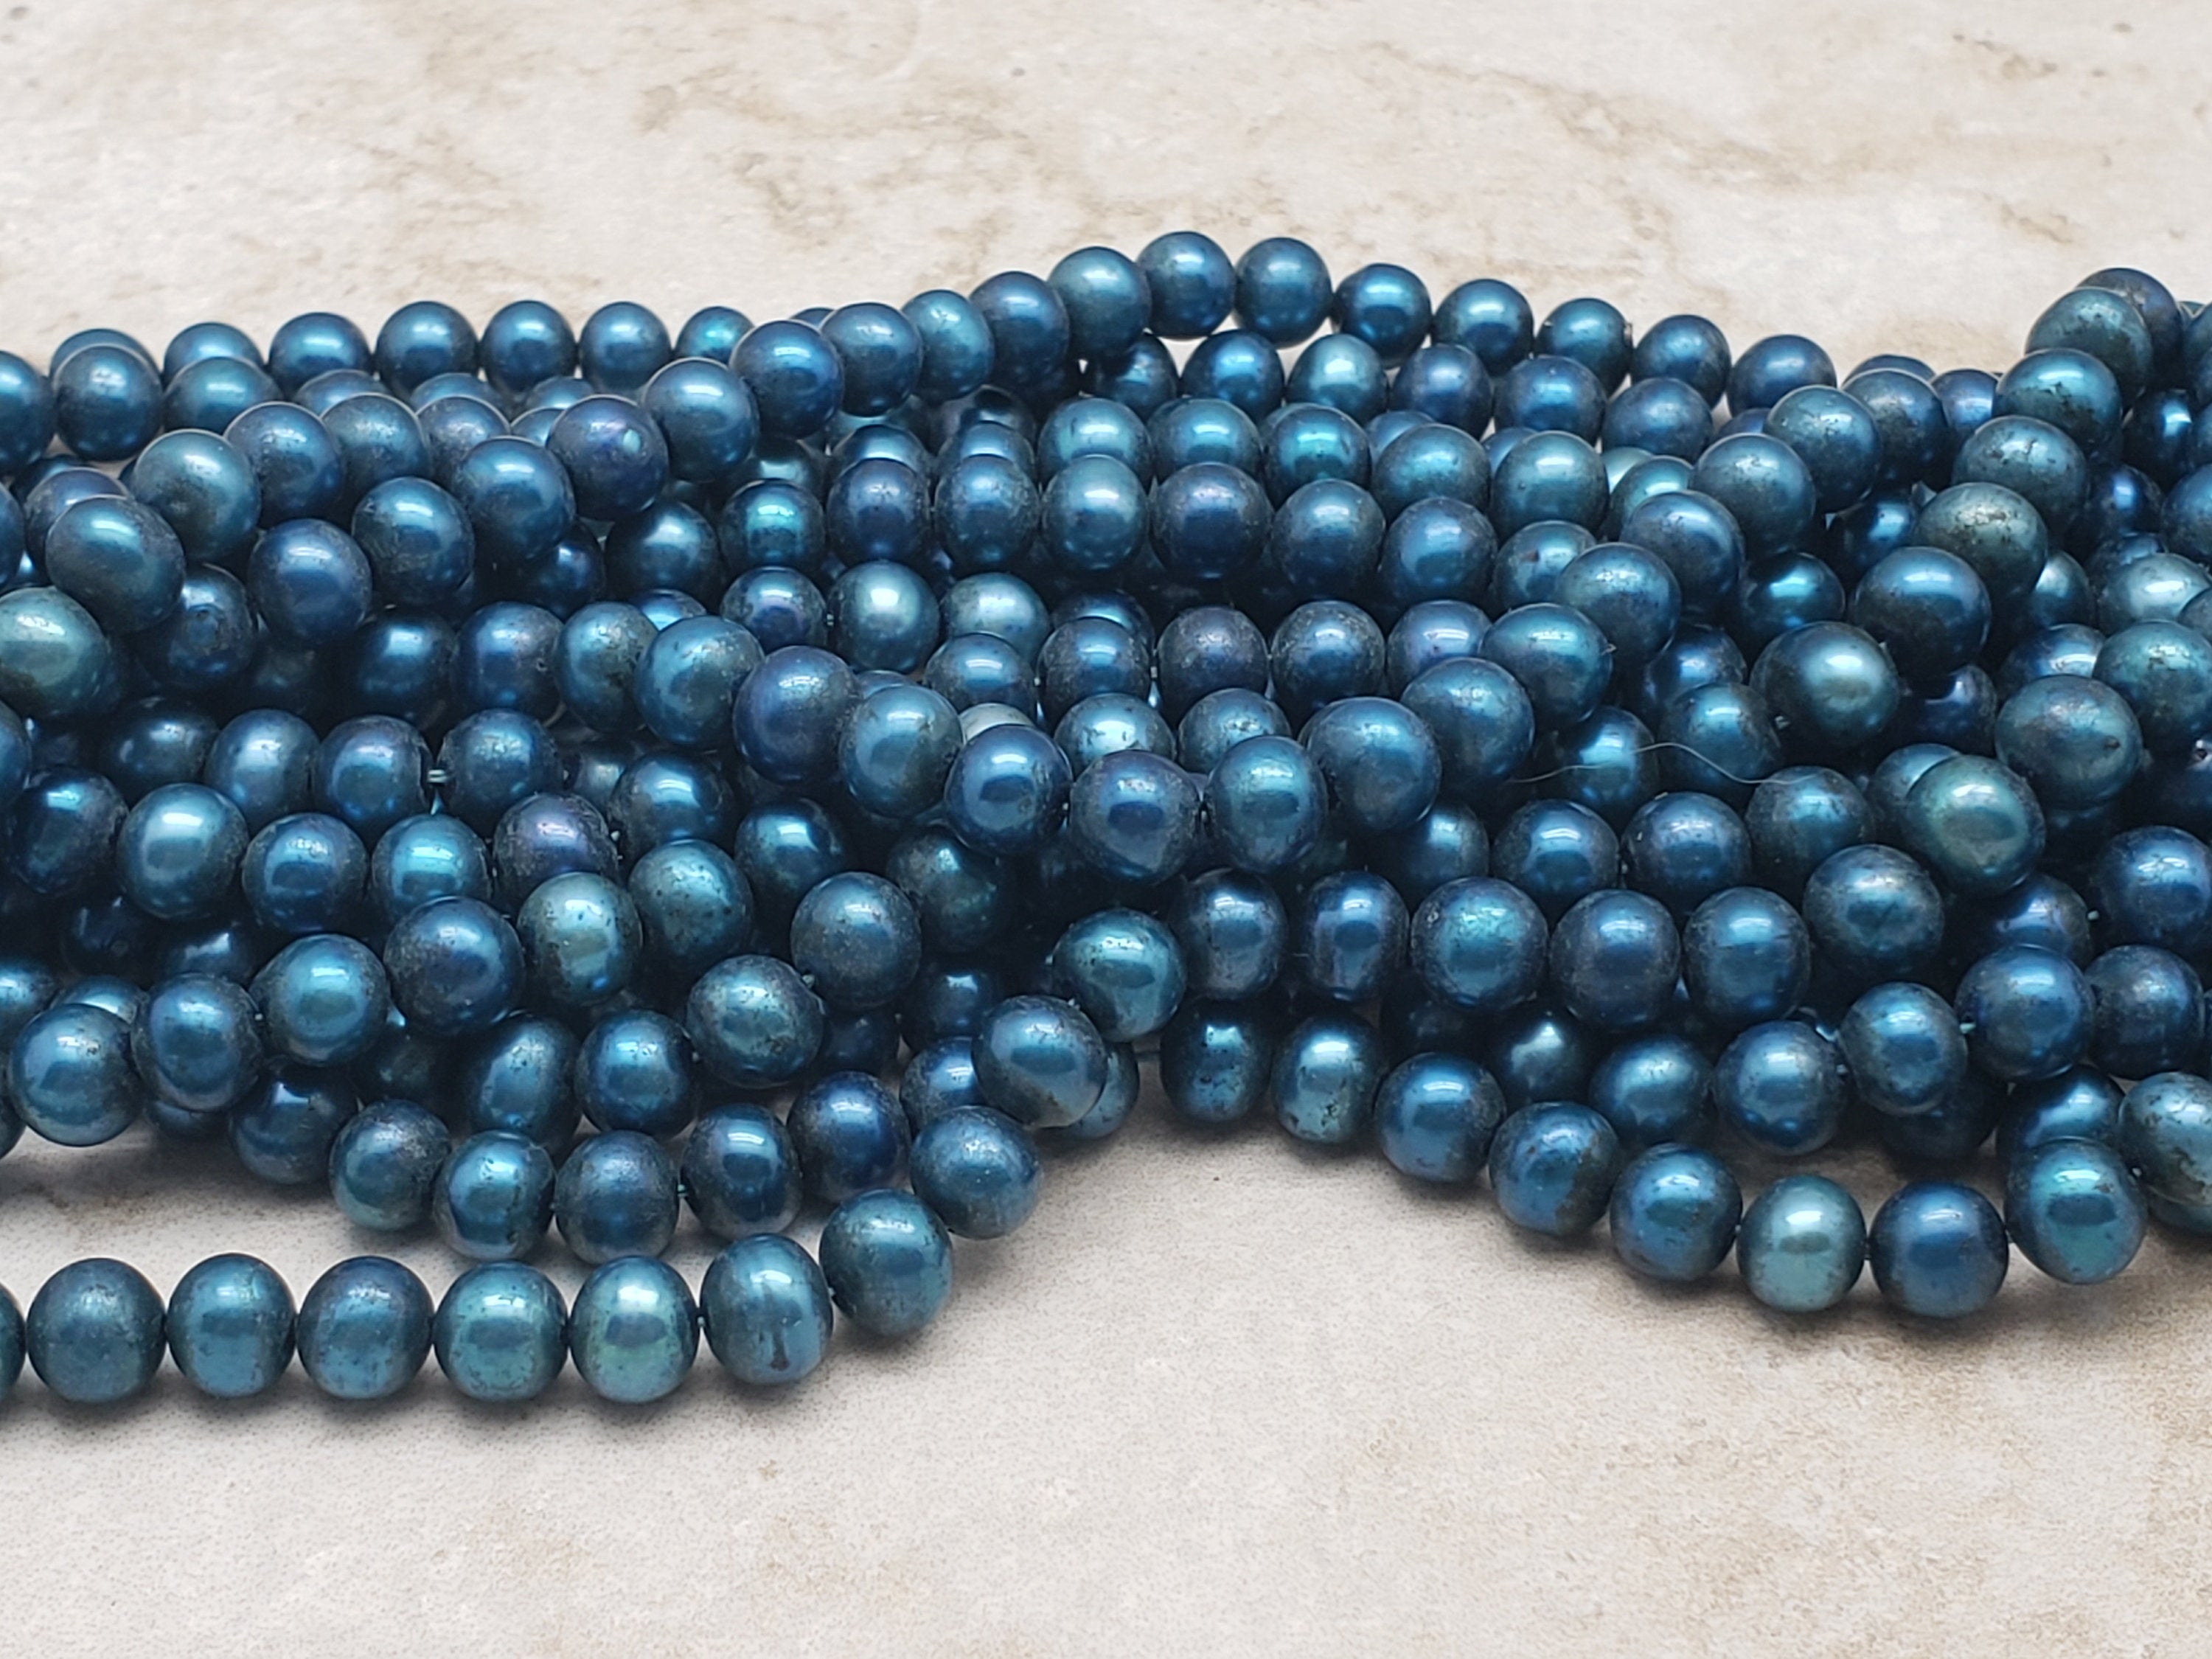 5.5mm to 6mm Potato Pearls, Blue, 15.75 inch Lot 2